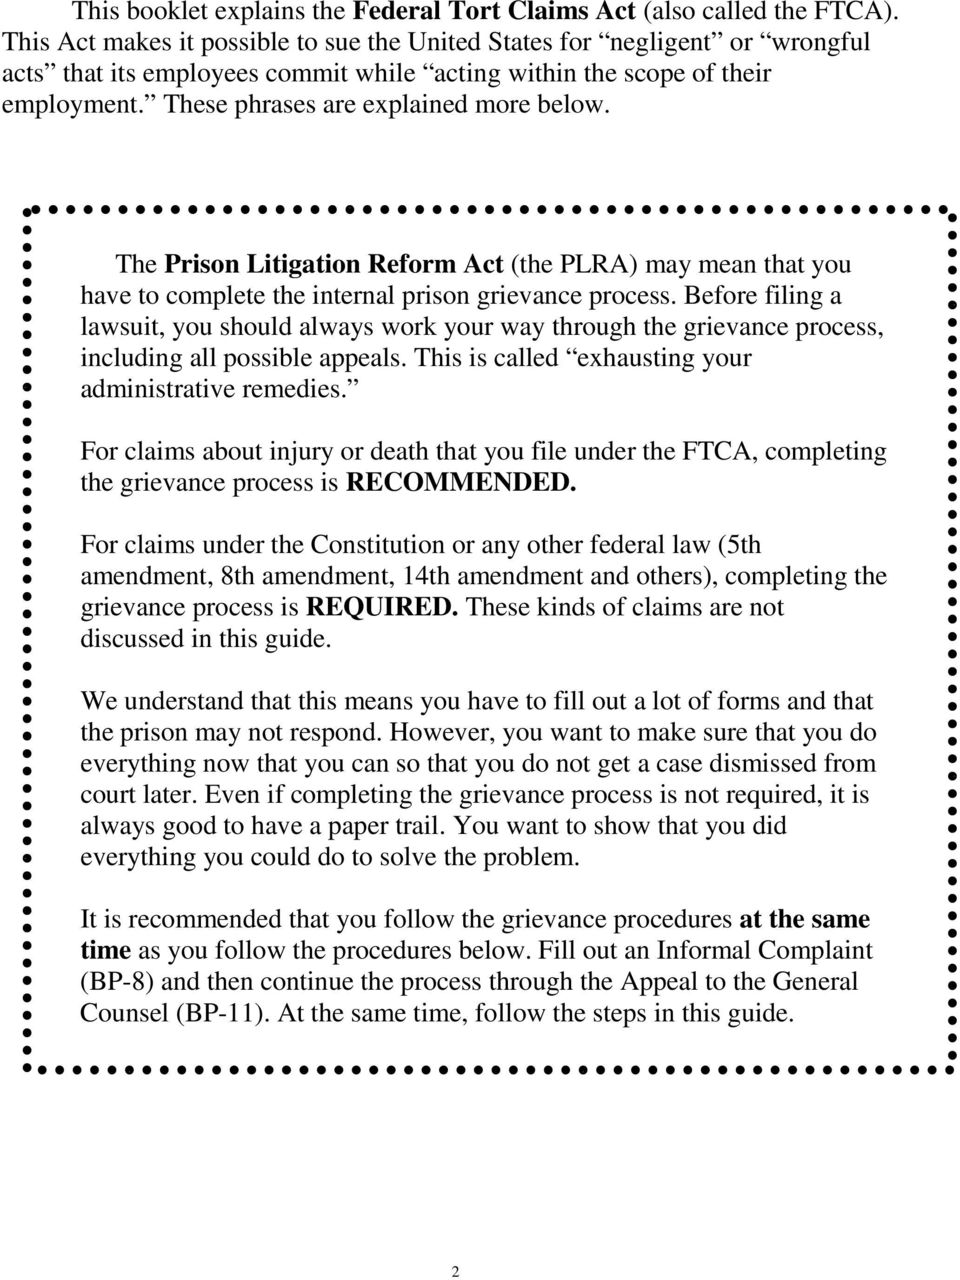 The Prison Litigation Reform Act (the PLRA) may mean that you have to complete the internal prison grievance process.